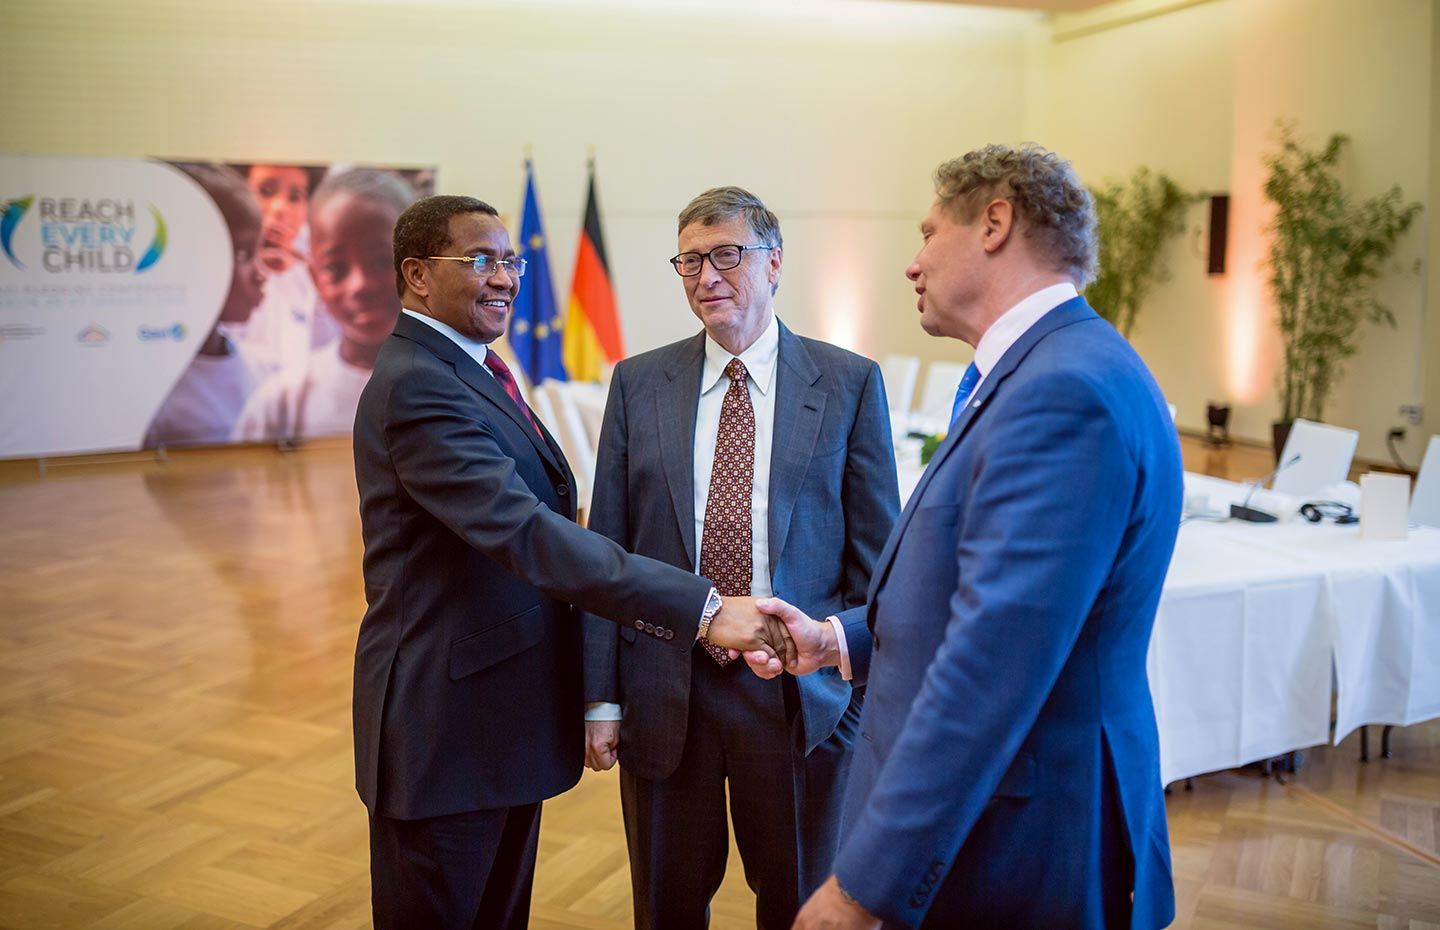 (L-R) Bill Gates, co-chair of the Bill & Melinda Gates Foundation, looks on as Global Ambassador for immunisation and former President of Tanzania Jakaya Kikwete (L) shakes hands with Gavi CEO Seth Berkley. Credit: Gavi/BMZ/2015/Stefan Zeits.